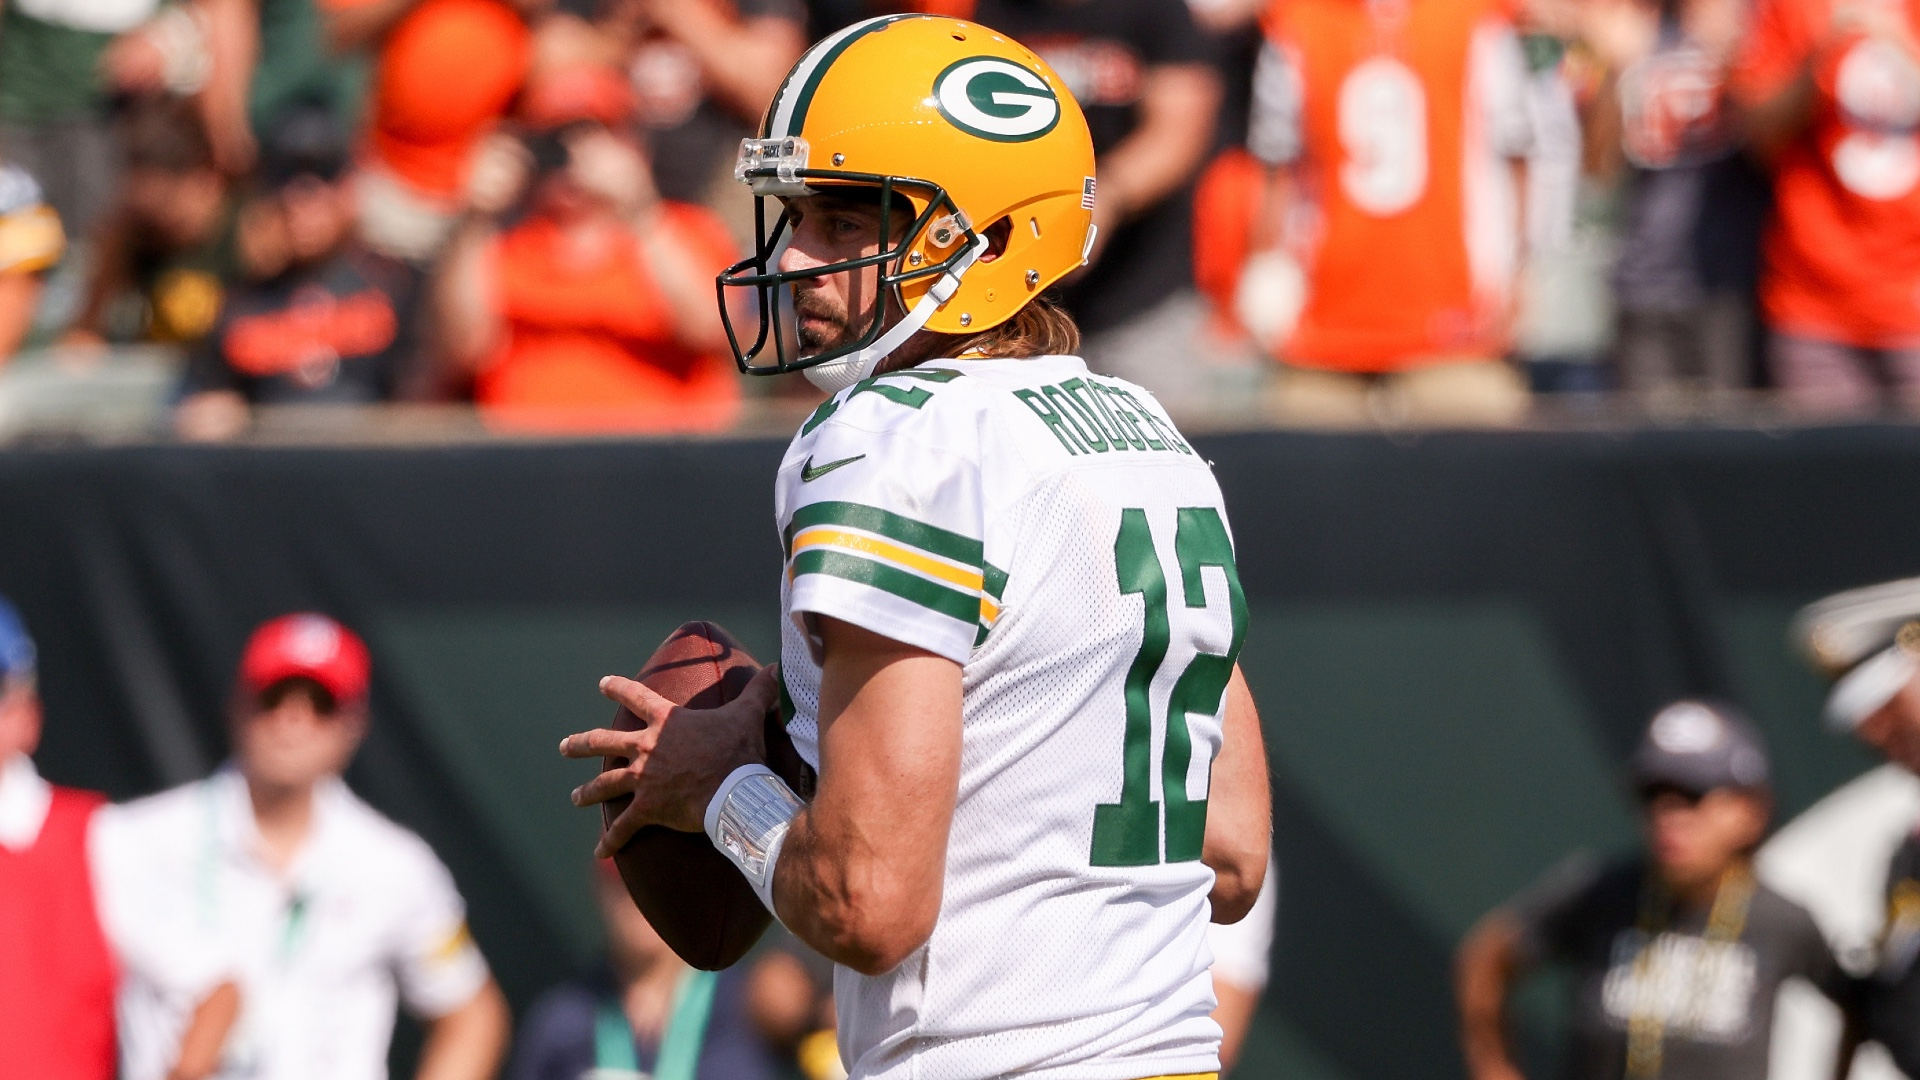 Aaron Rodgers tells Joe Burrow to slide more after Packers' win vs. Bengals: 'You're too damn talented'